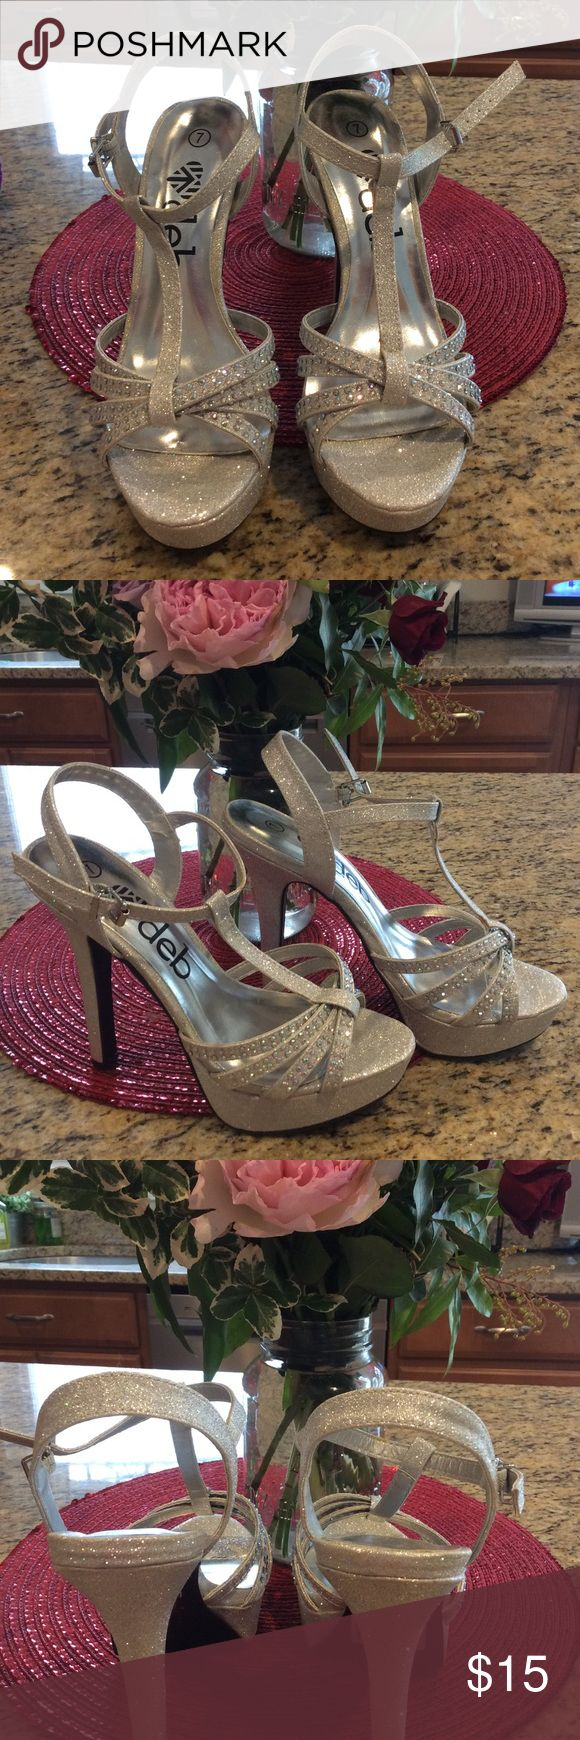 Deb Shop Prom Silver Sparkly Rhinestone Heels new These I bought in bed shop n never wore them ! Strapped with rhinestones in perfect shape brand new! Size 7 adjustable buckle strap! No smoking clean no pet home! Fast shipping great for prom! deb Shoes